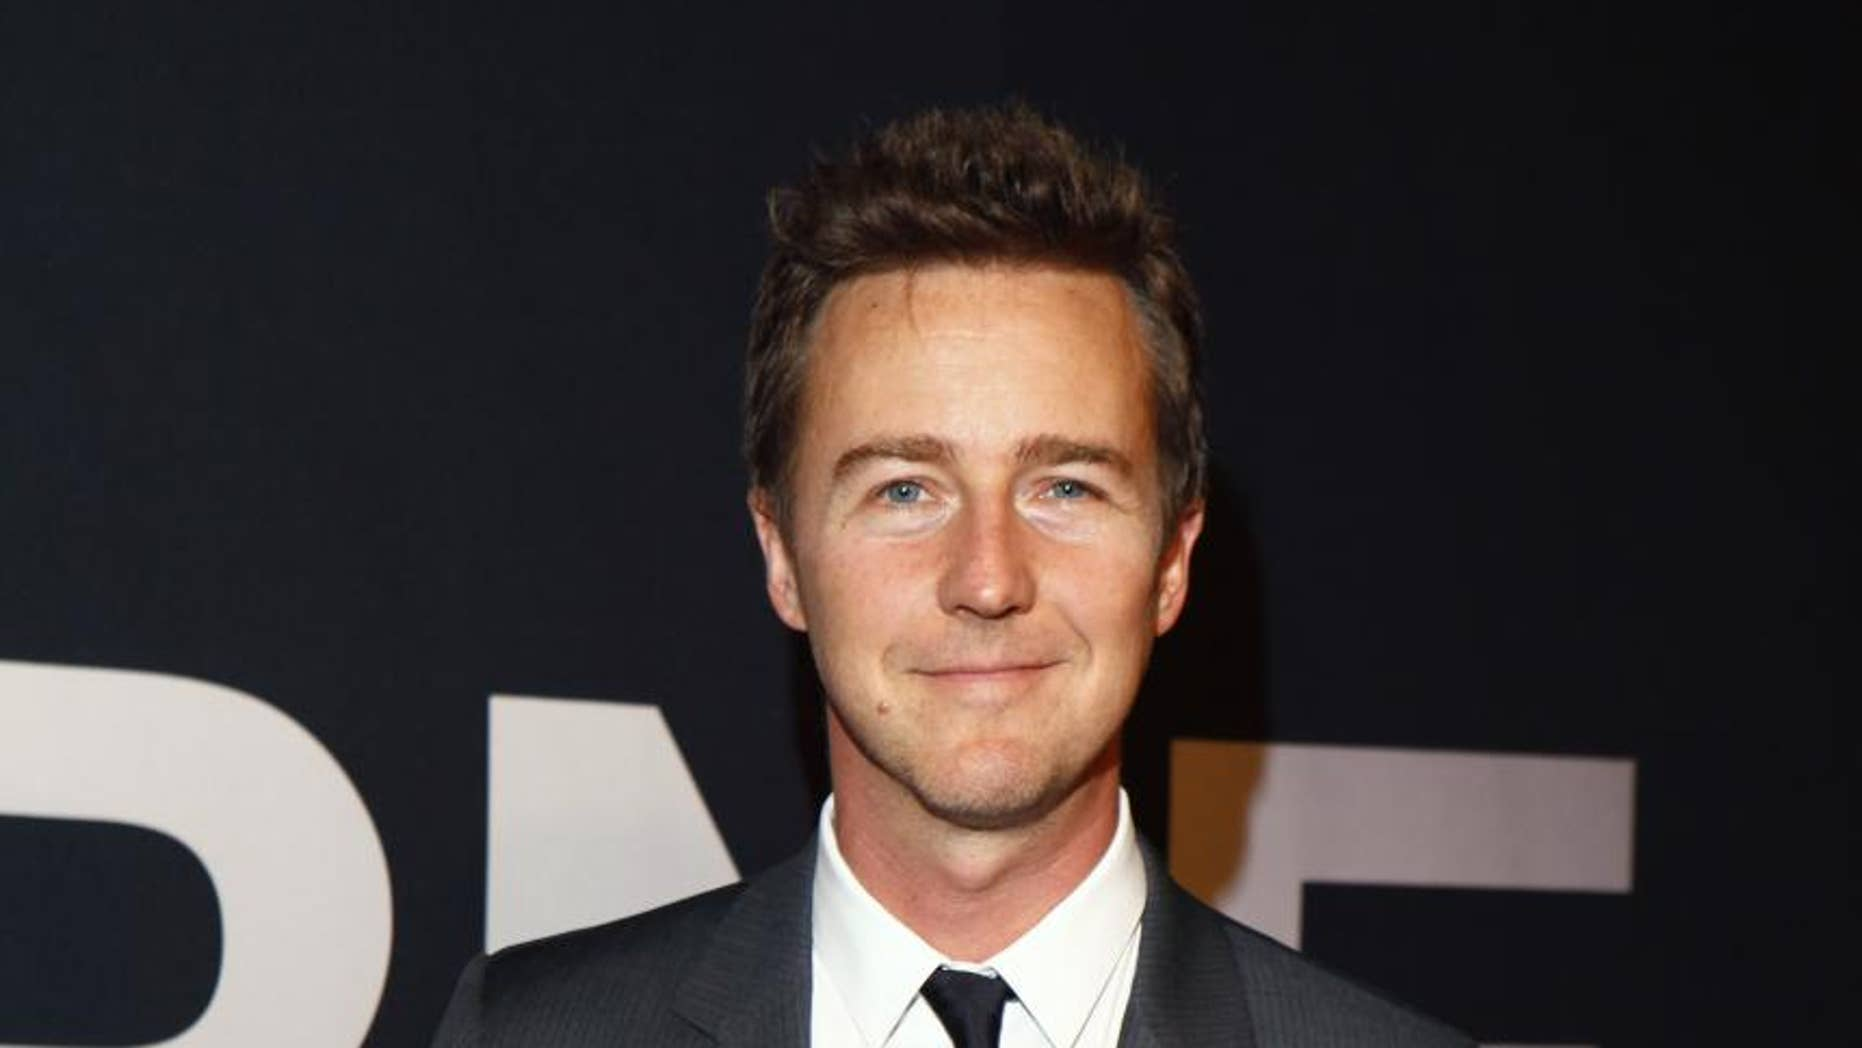 """Edward Norton, known for his roles in """"Fight Club"""" and """"American History X,"""" ran the 2009 New York City Marathon to raise money for the Maasai Wilderness Conservation Trust. When all was said and done, the actor and 29 of his MWCT team members raised over $1.2 million."""